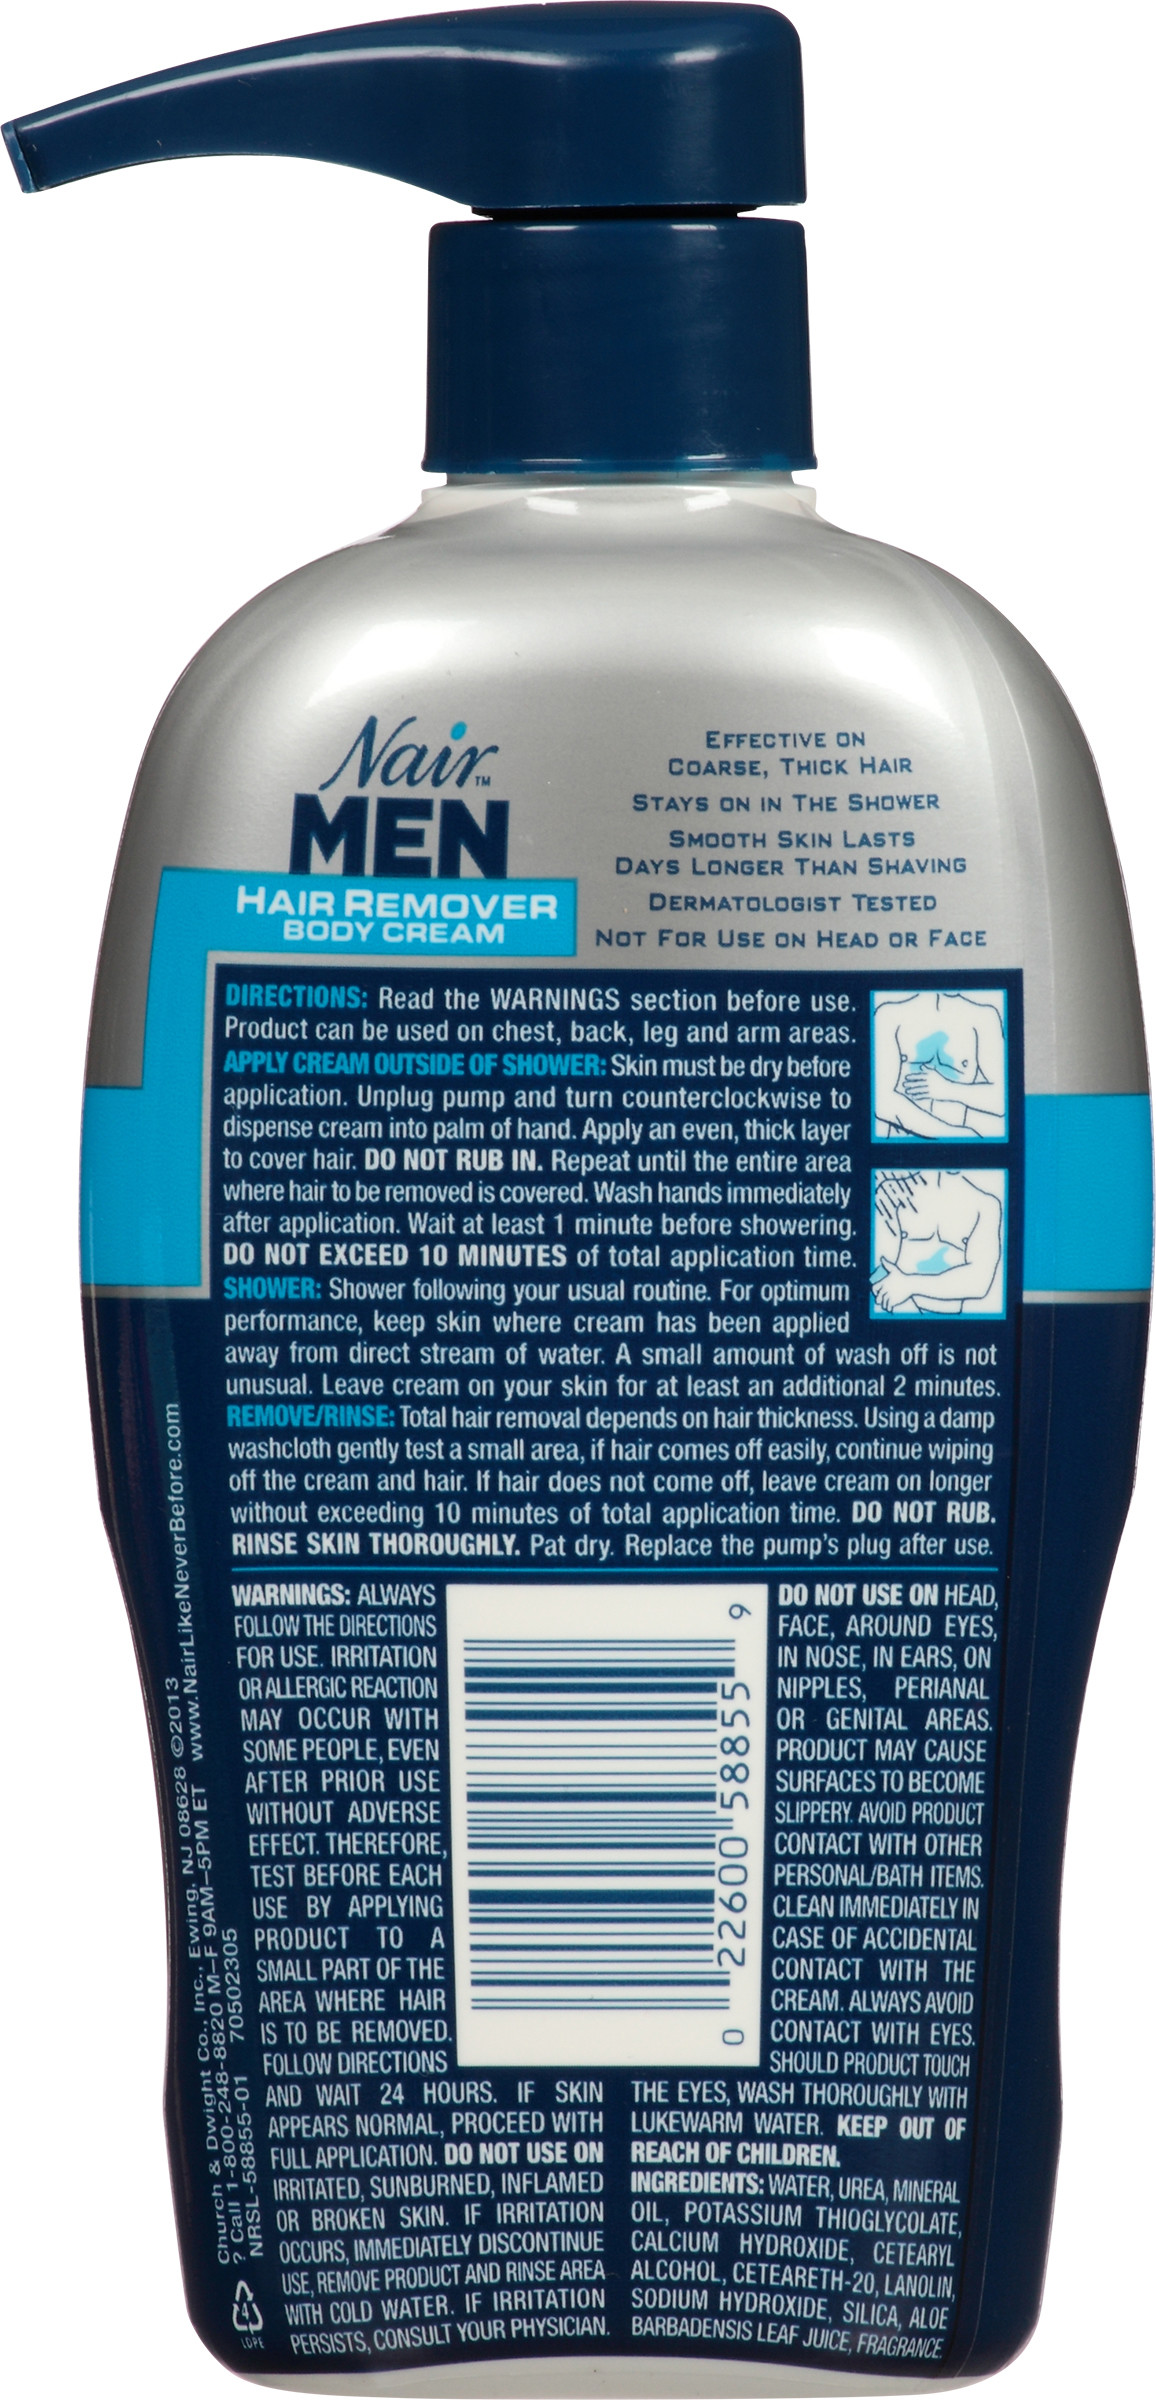 Nair Hair Remover For Men Hair Remover Body Cream 13 Oz Walmart Com Walmart Com